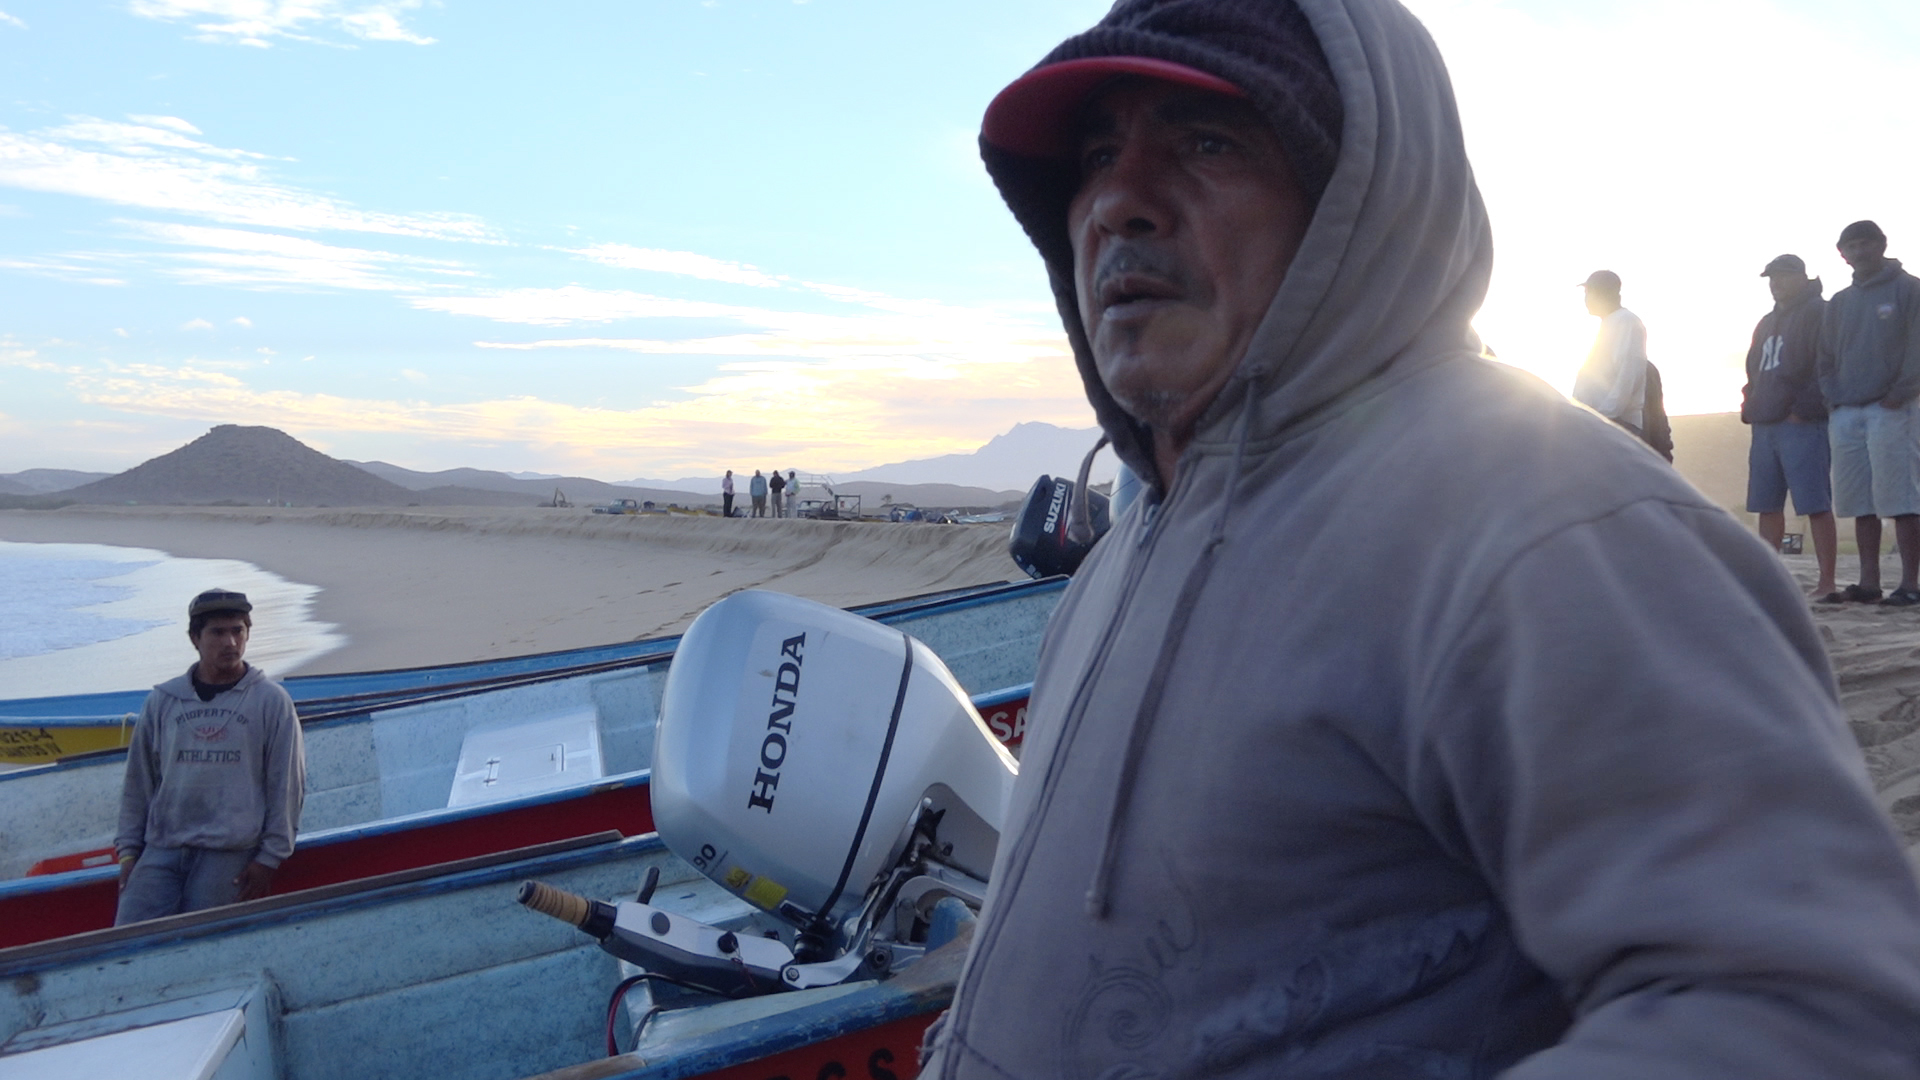 Rosario Salvatierra, a fourth generation fisherman in Todos Santos